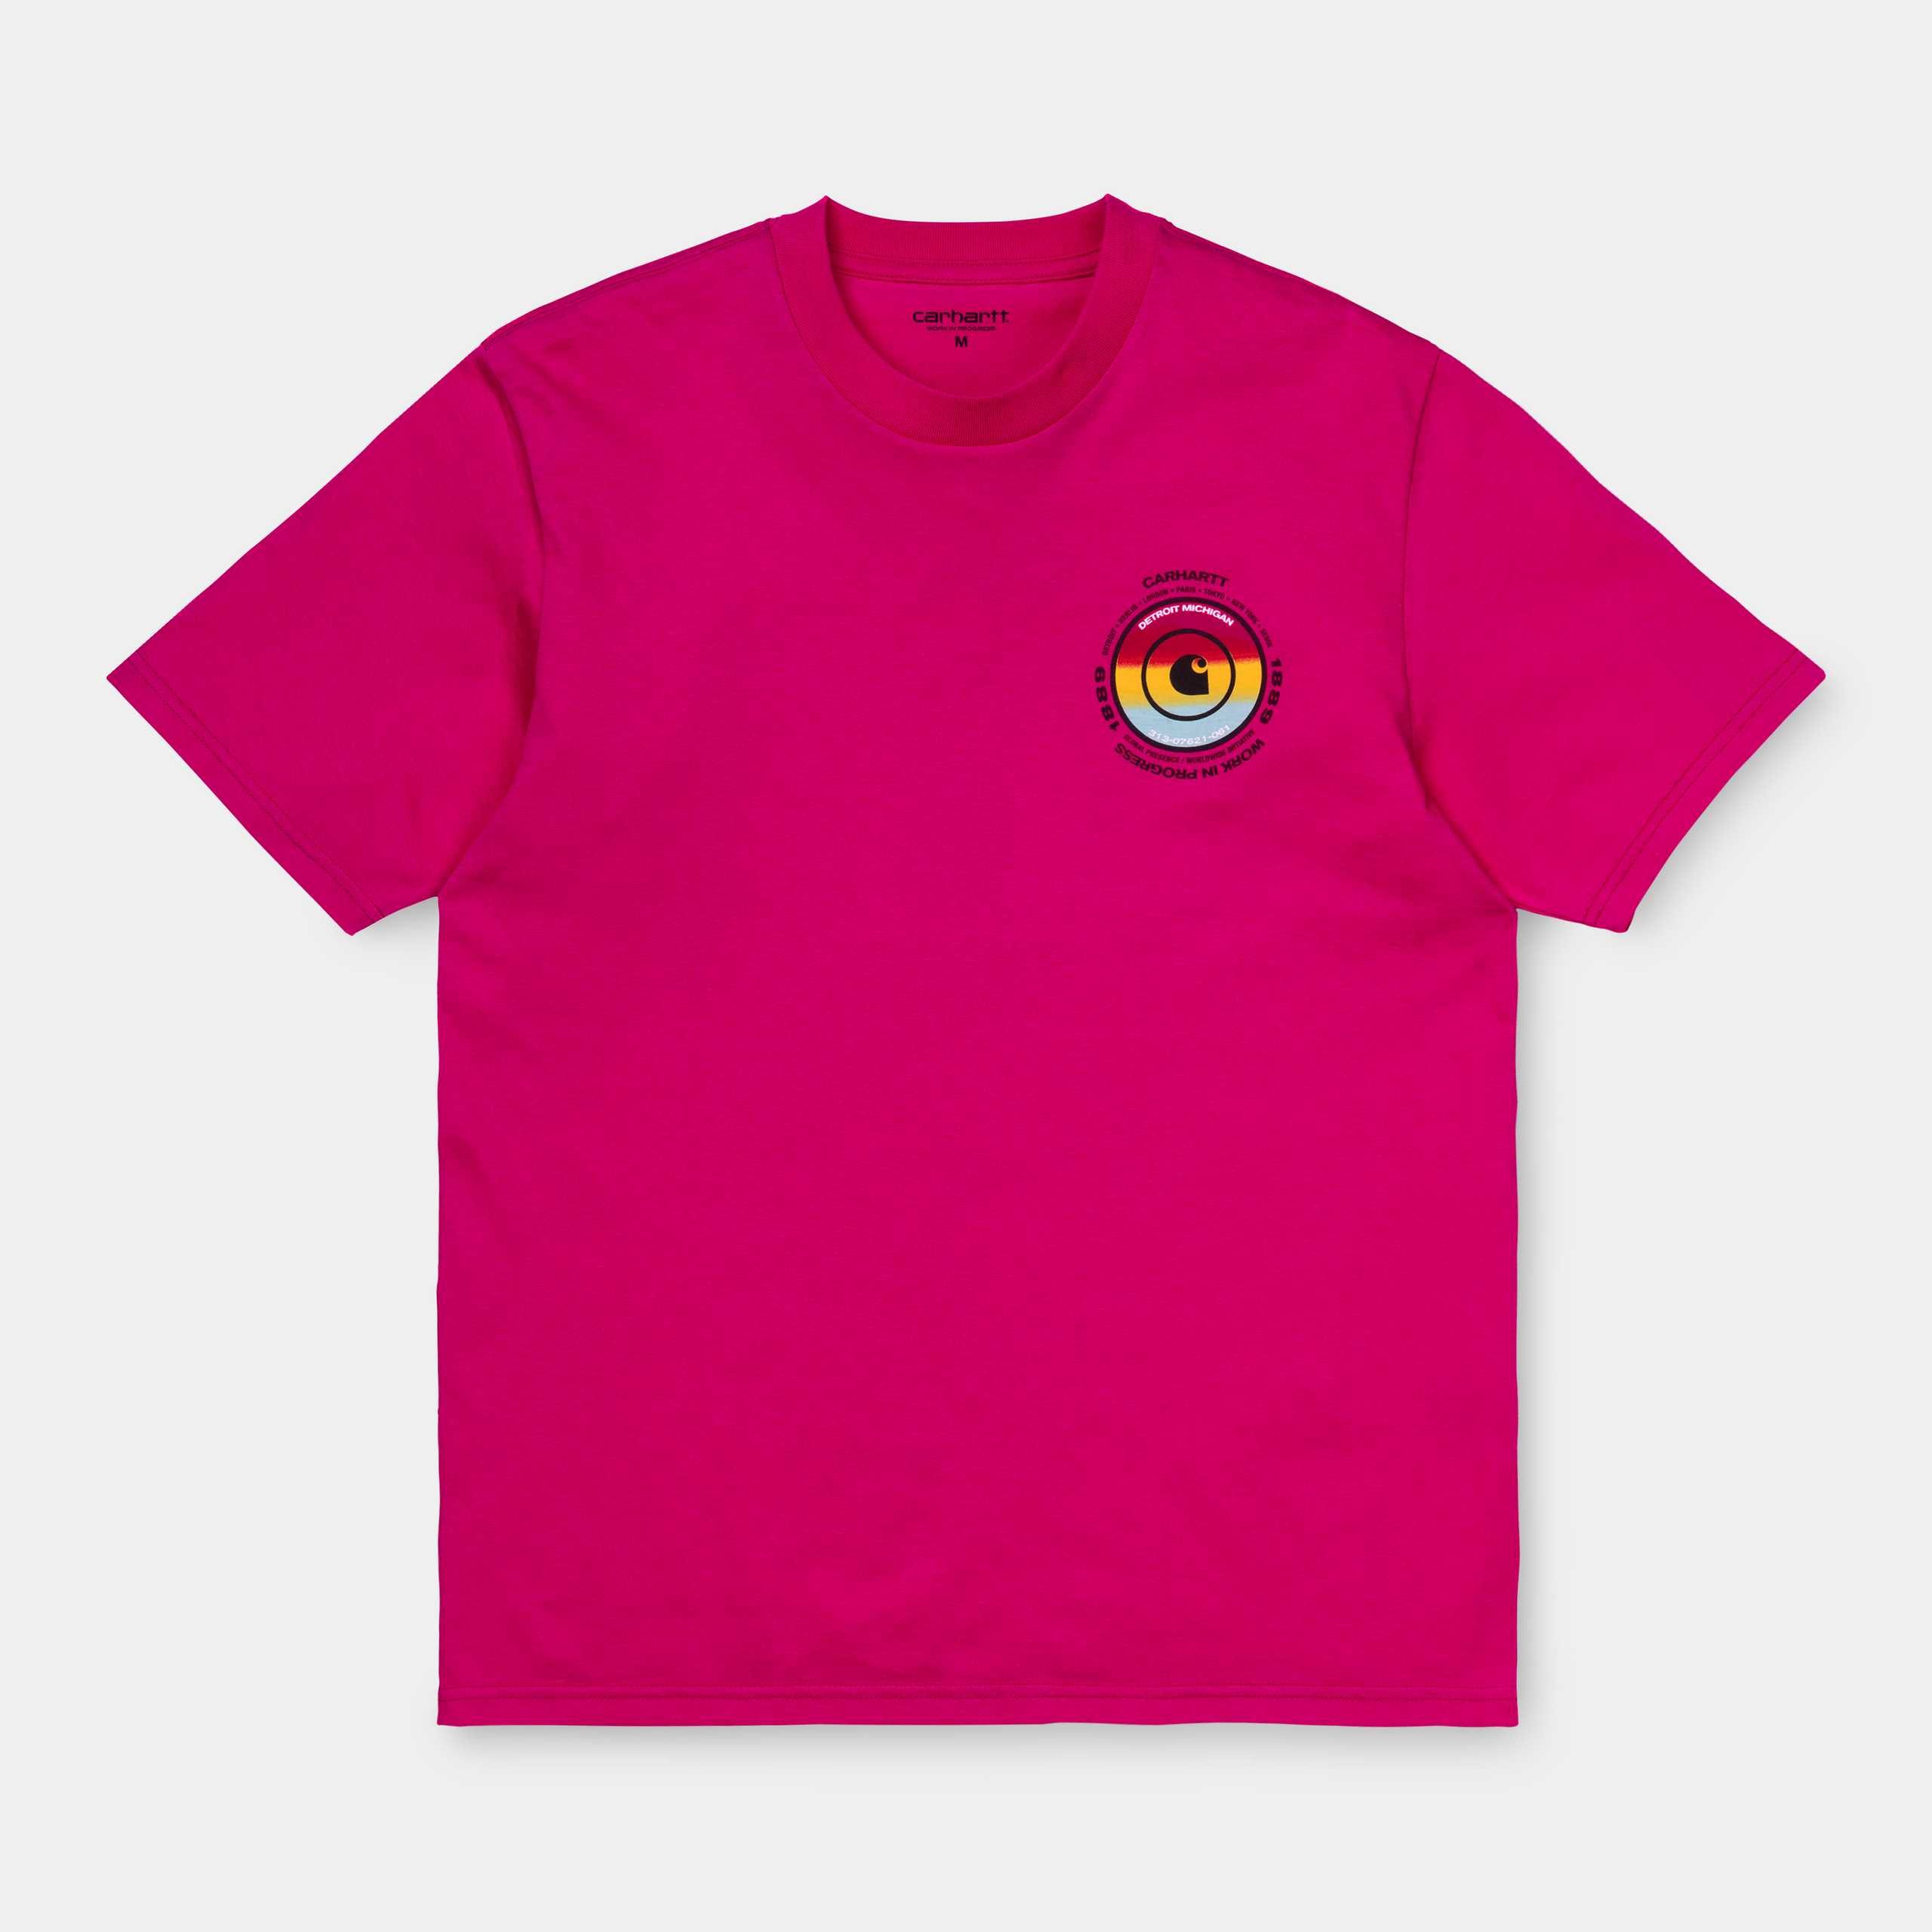 CARHARTT S/S WORLDWIDE T-SHIRT